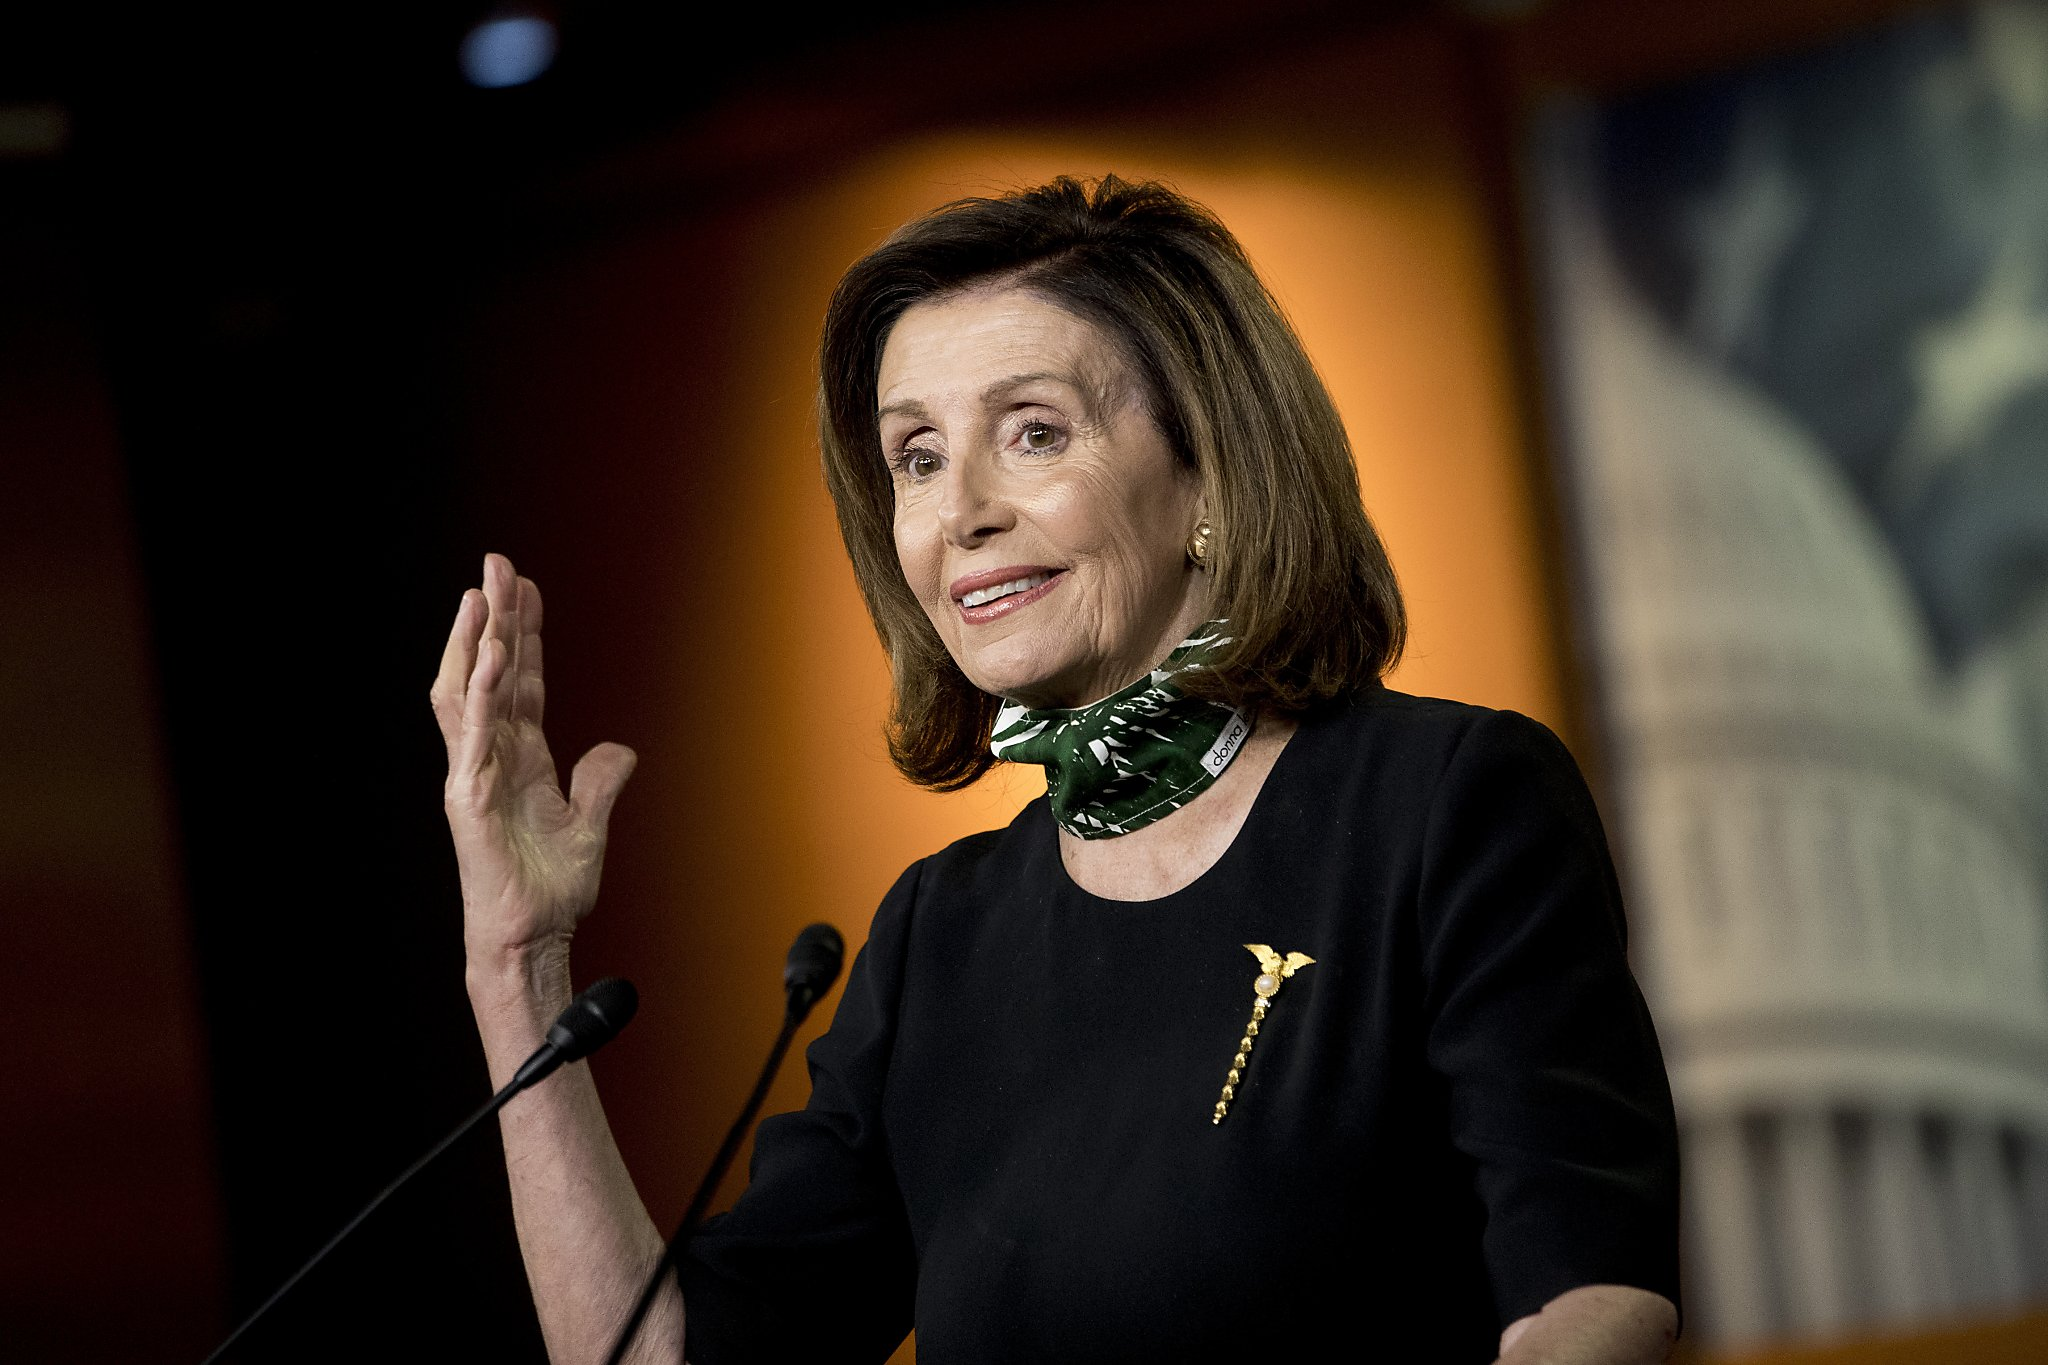 Nancy Pelosi says 'morbidly obese' Trump should not be taking hydroxychloroquine